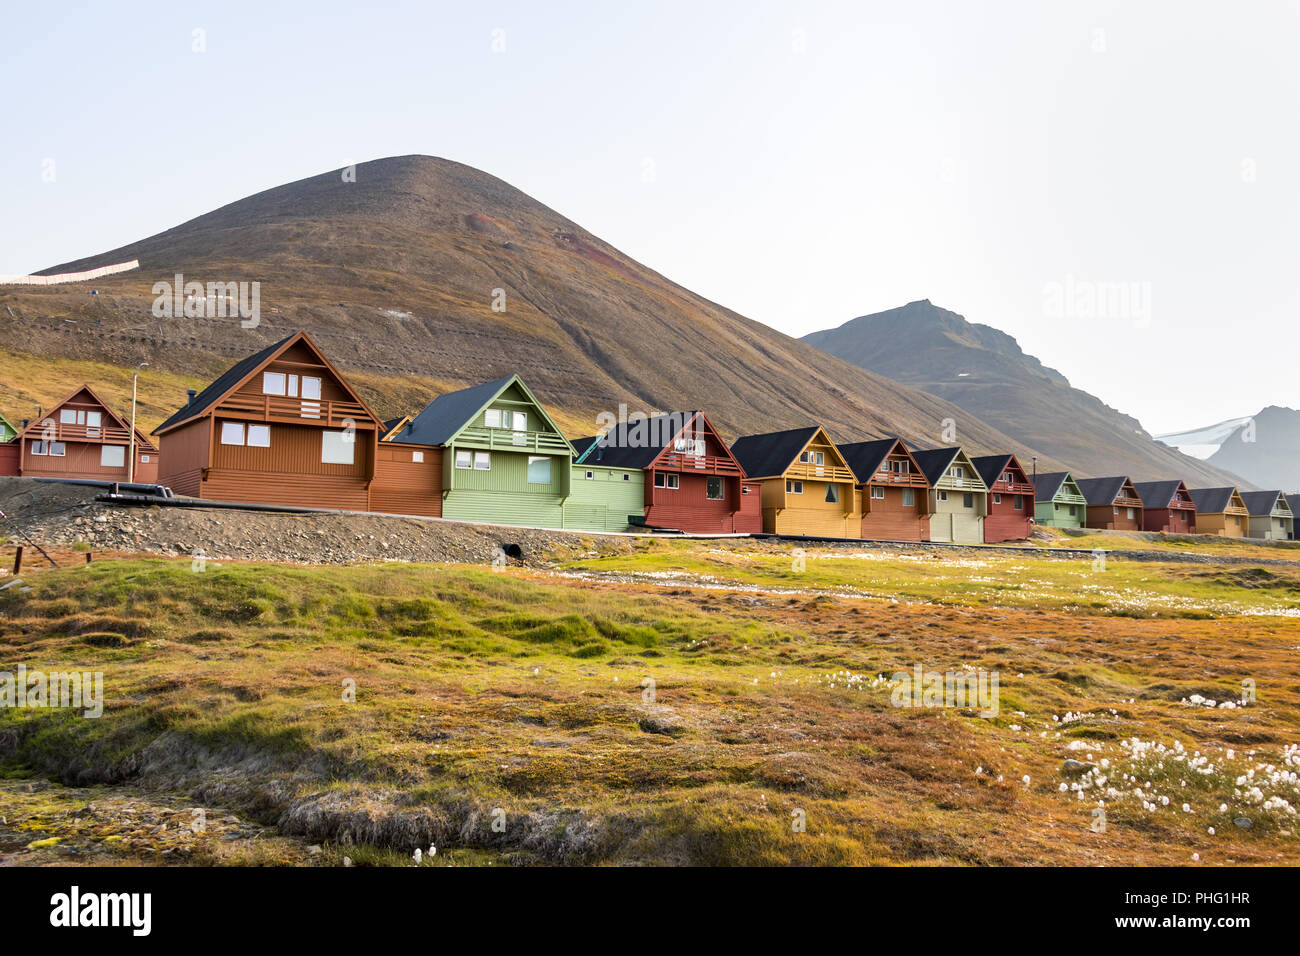 Colorful wooden houses along the road in summer, Longyearbyen, Svalbard, Norway. - Stock Image